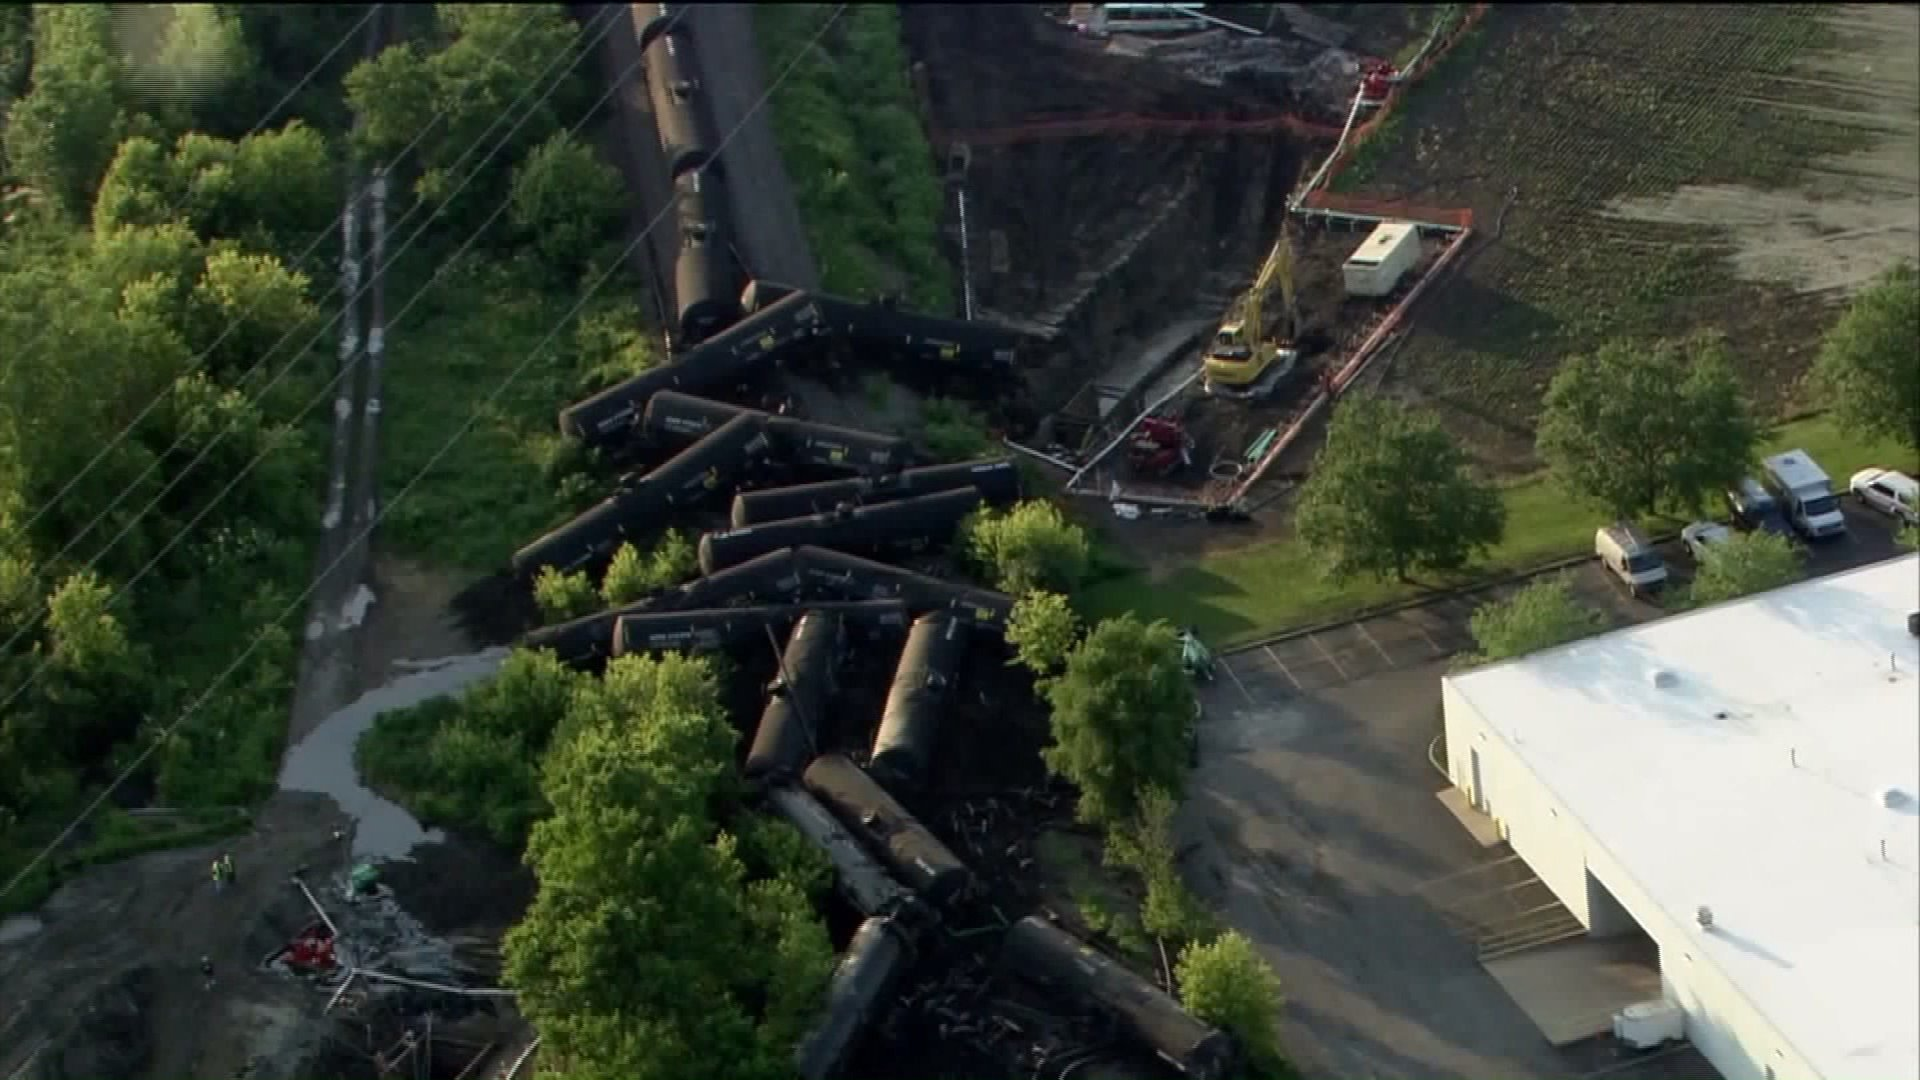 Car Leaking Oil >> Train hauling crude oil derails in Plainfield, causing evacuation but no injuries - Chicago Tribune